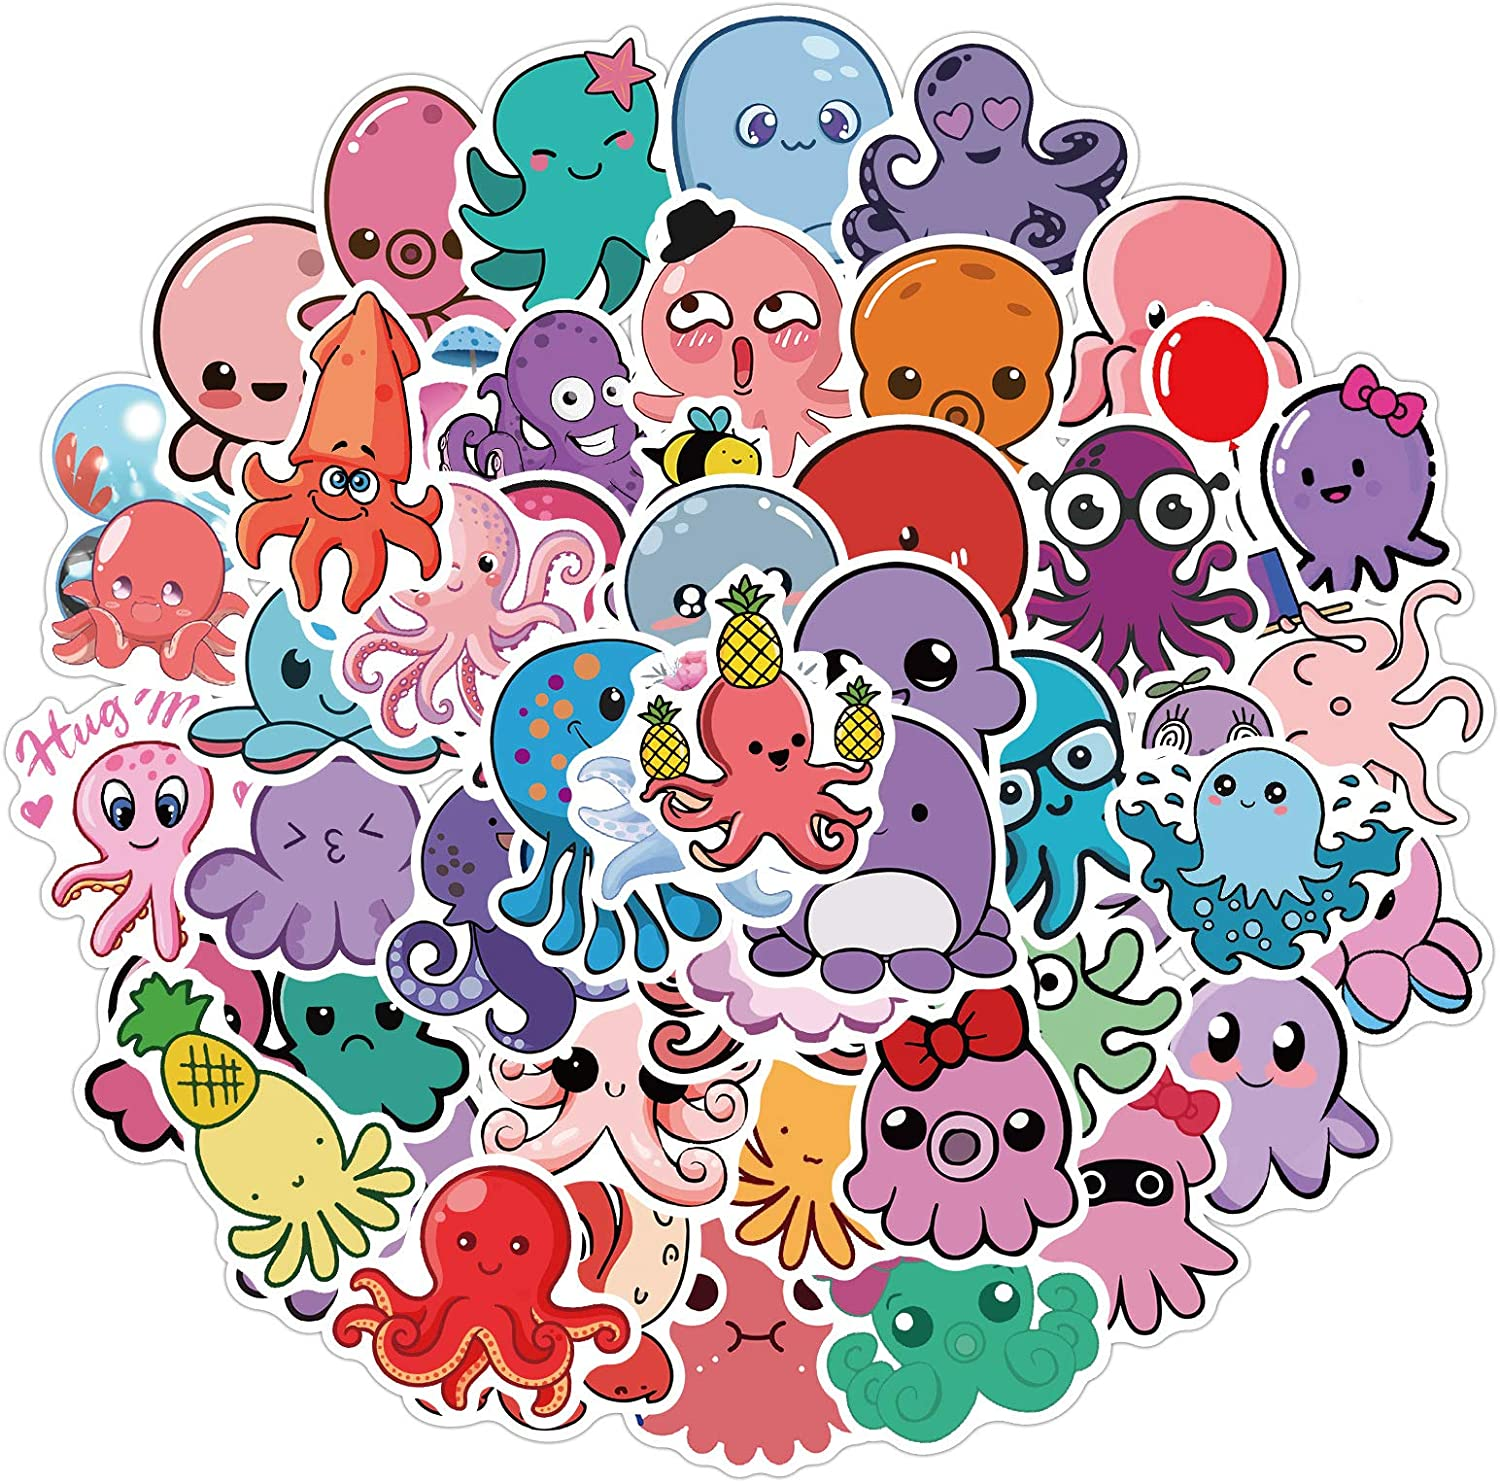 Cute Octopus Stickers Aesthetic Trendy Positive Stickers for Water Bottles 50pcs, Vinyl Waterproof Laptop Stickers Colorful Octopus Decal Party Decorations